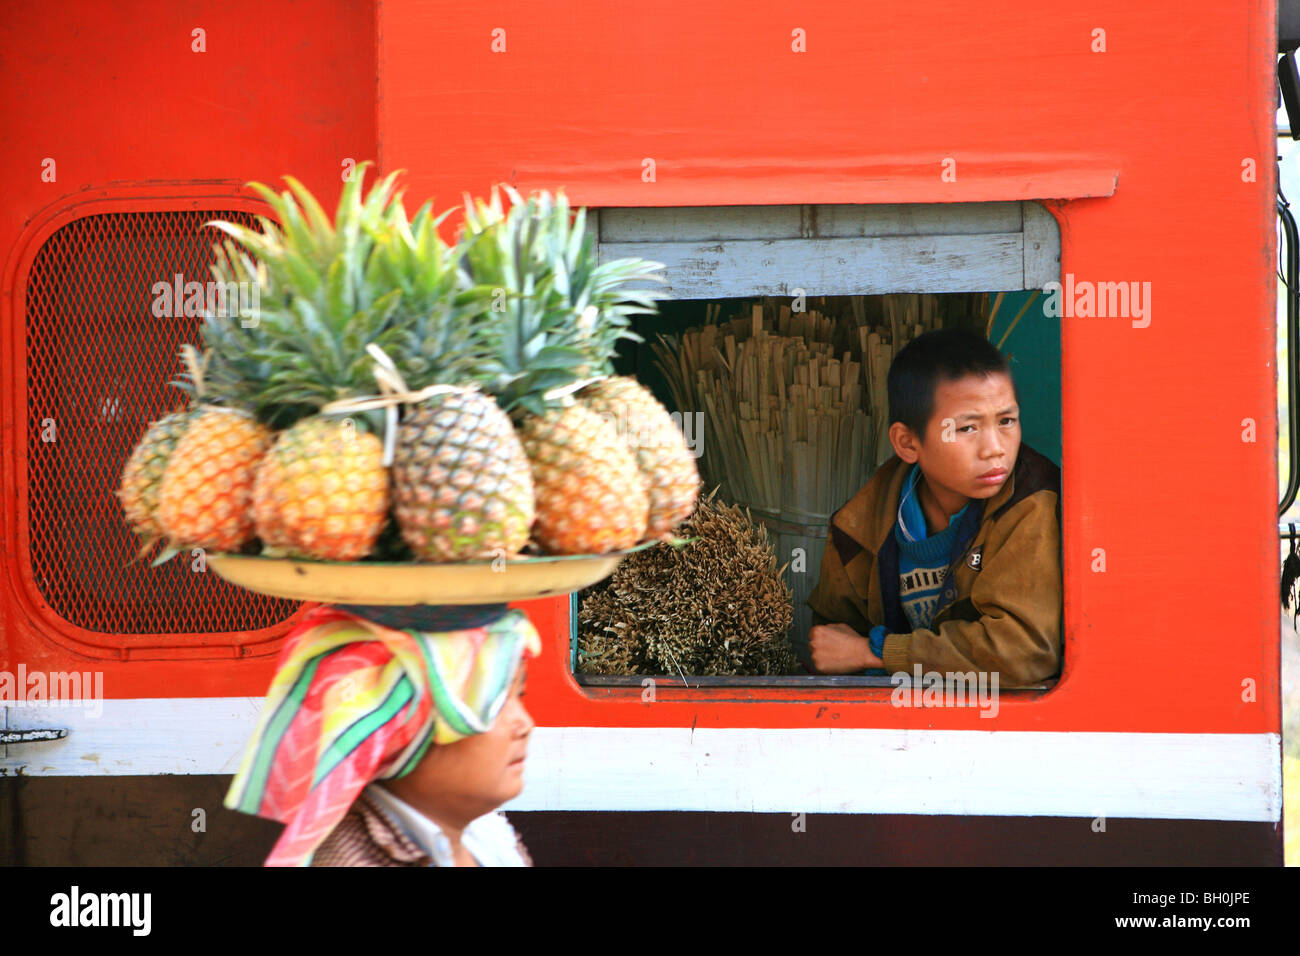 A woman selling fruit, a boy looking out of the window of a train, Hispaw, Shan State, Myanmar, Burma, Asia Stock Foto